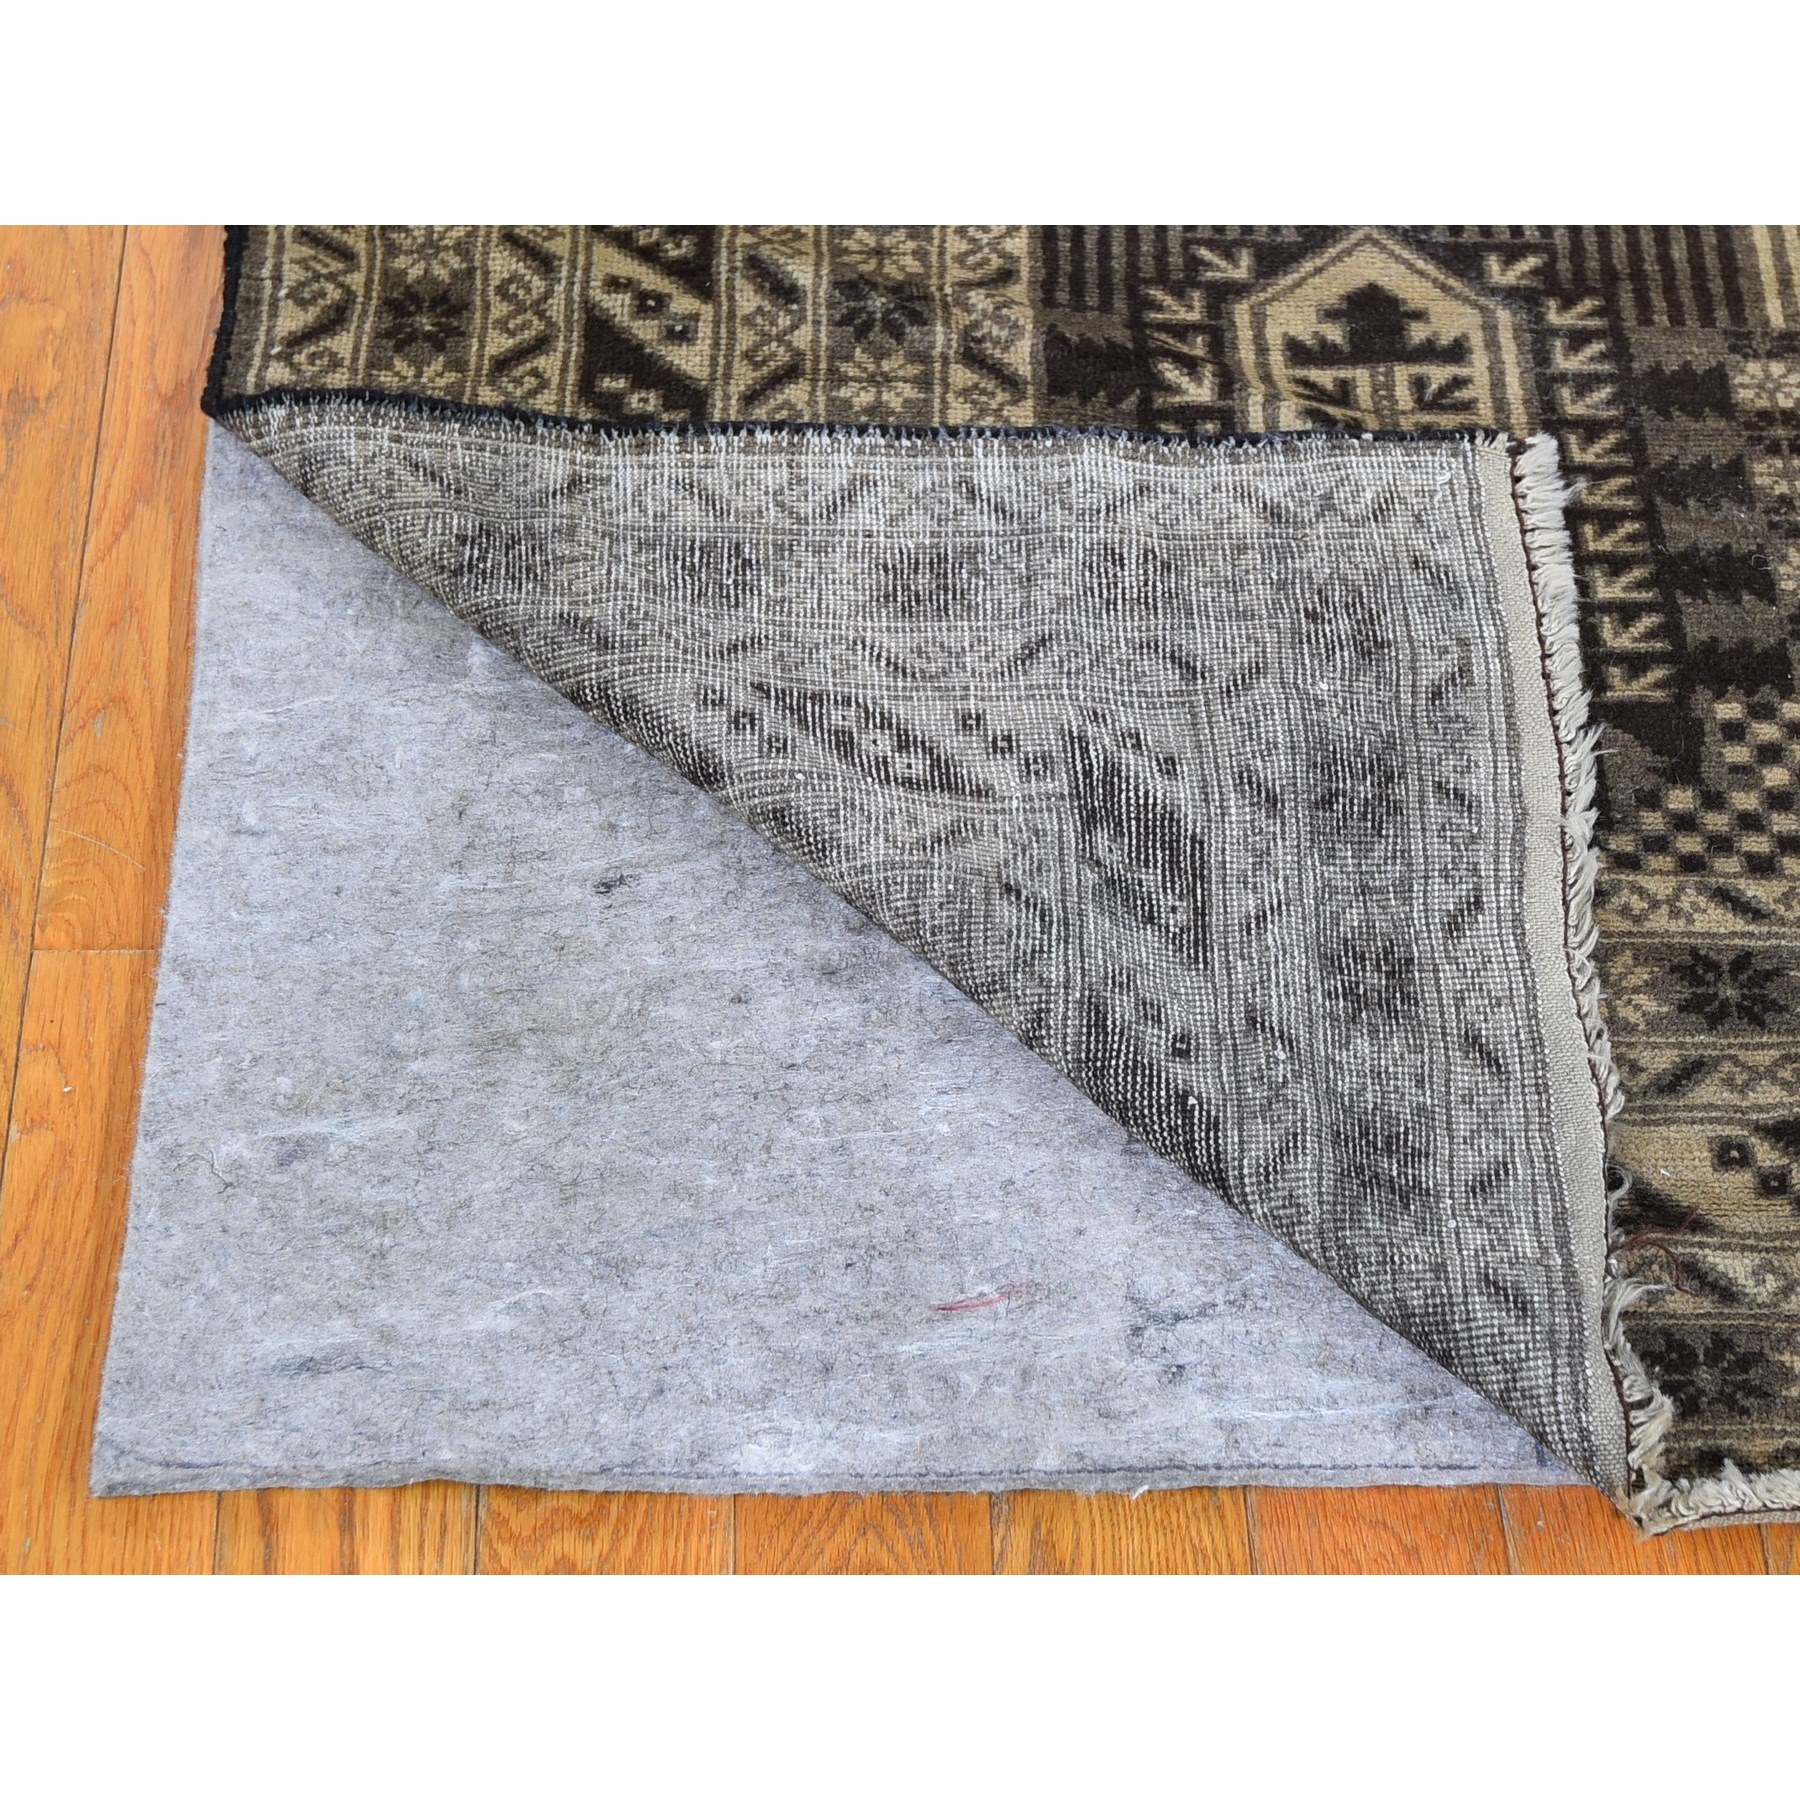 6'x10' Wash and Vintage Afghan Baluch Natural Color Pure Wool Hand Woven Oriental Rug